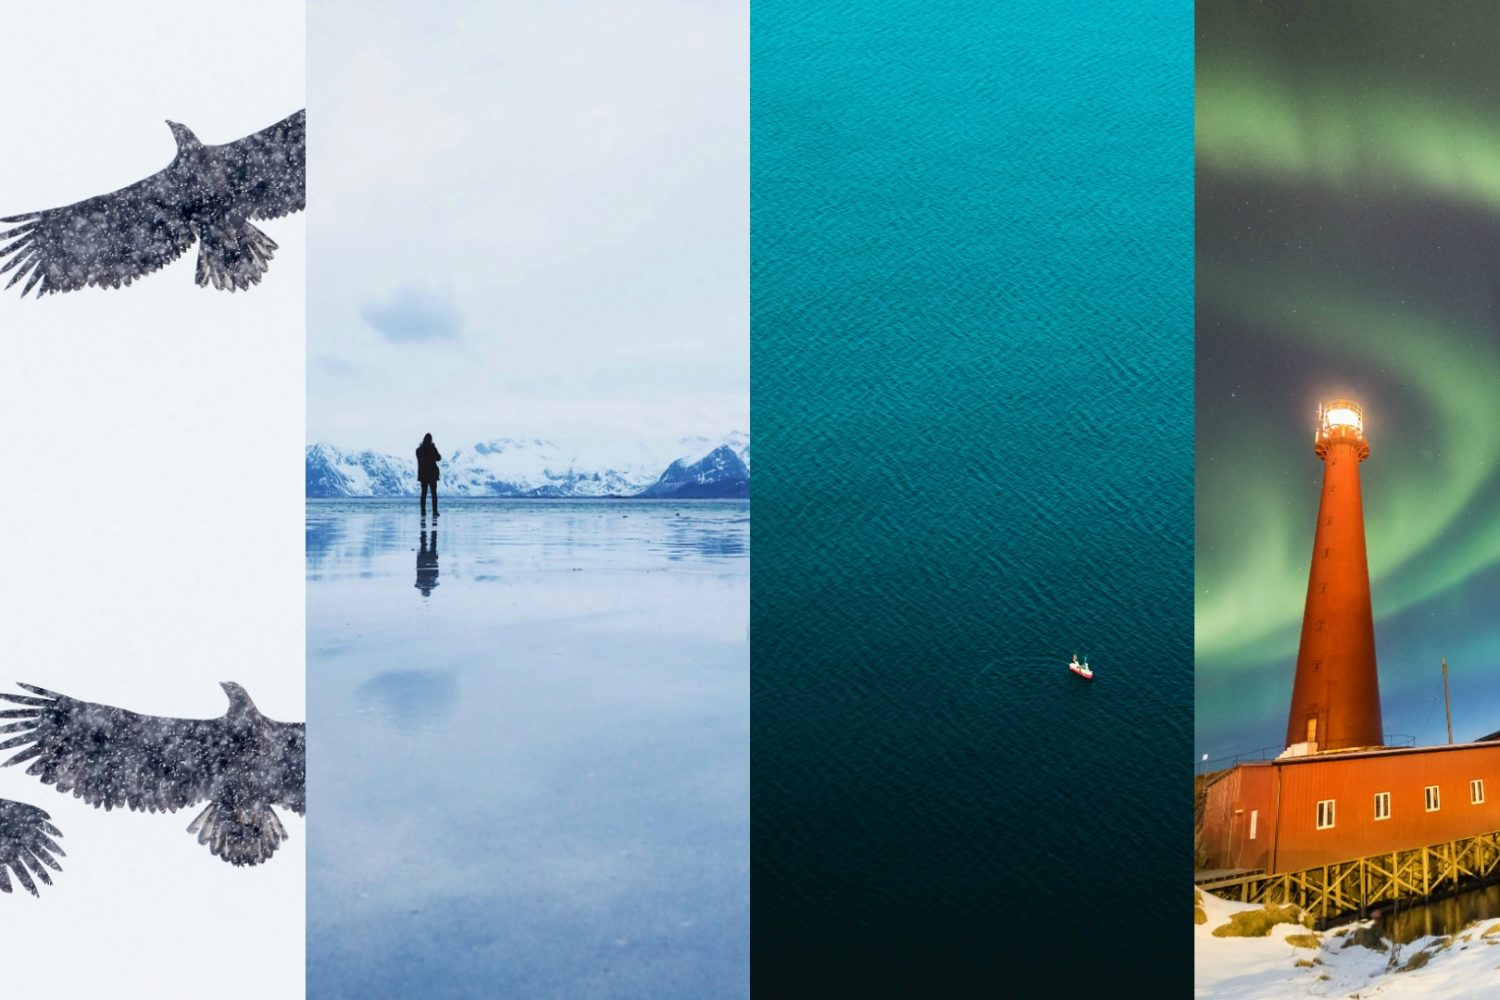 #WAYNRTH: 4 photographers capture the Lotofen Islands